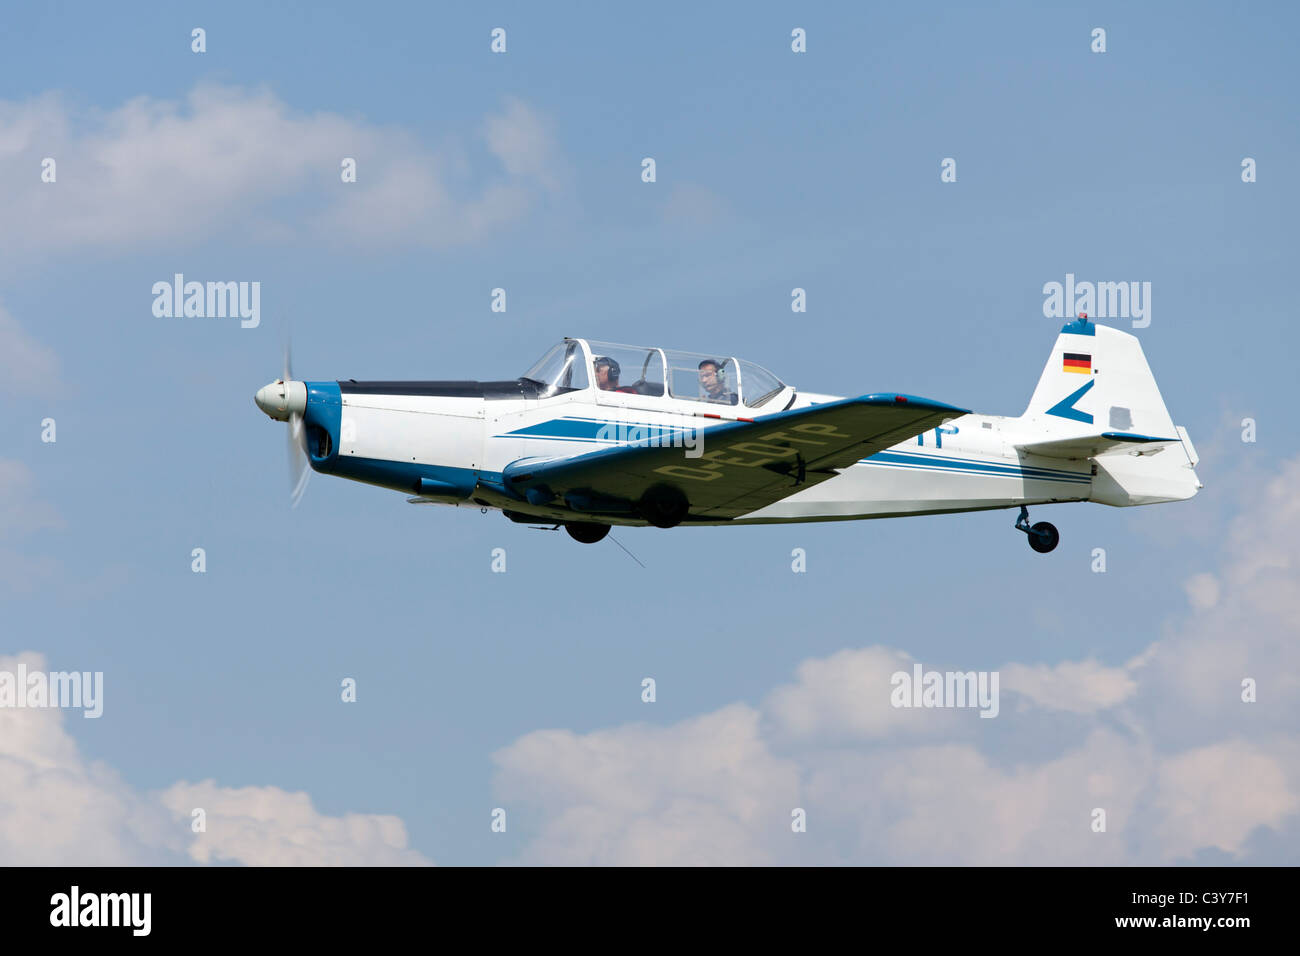 sporting airplane Zlin at an airfield festival in Lower Saxony, Germany - Stock Image